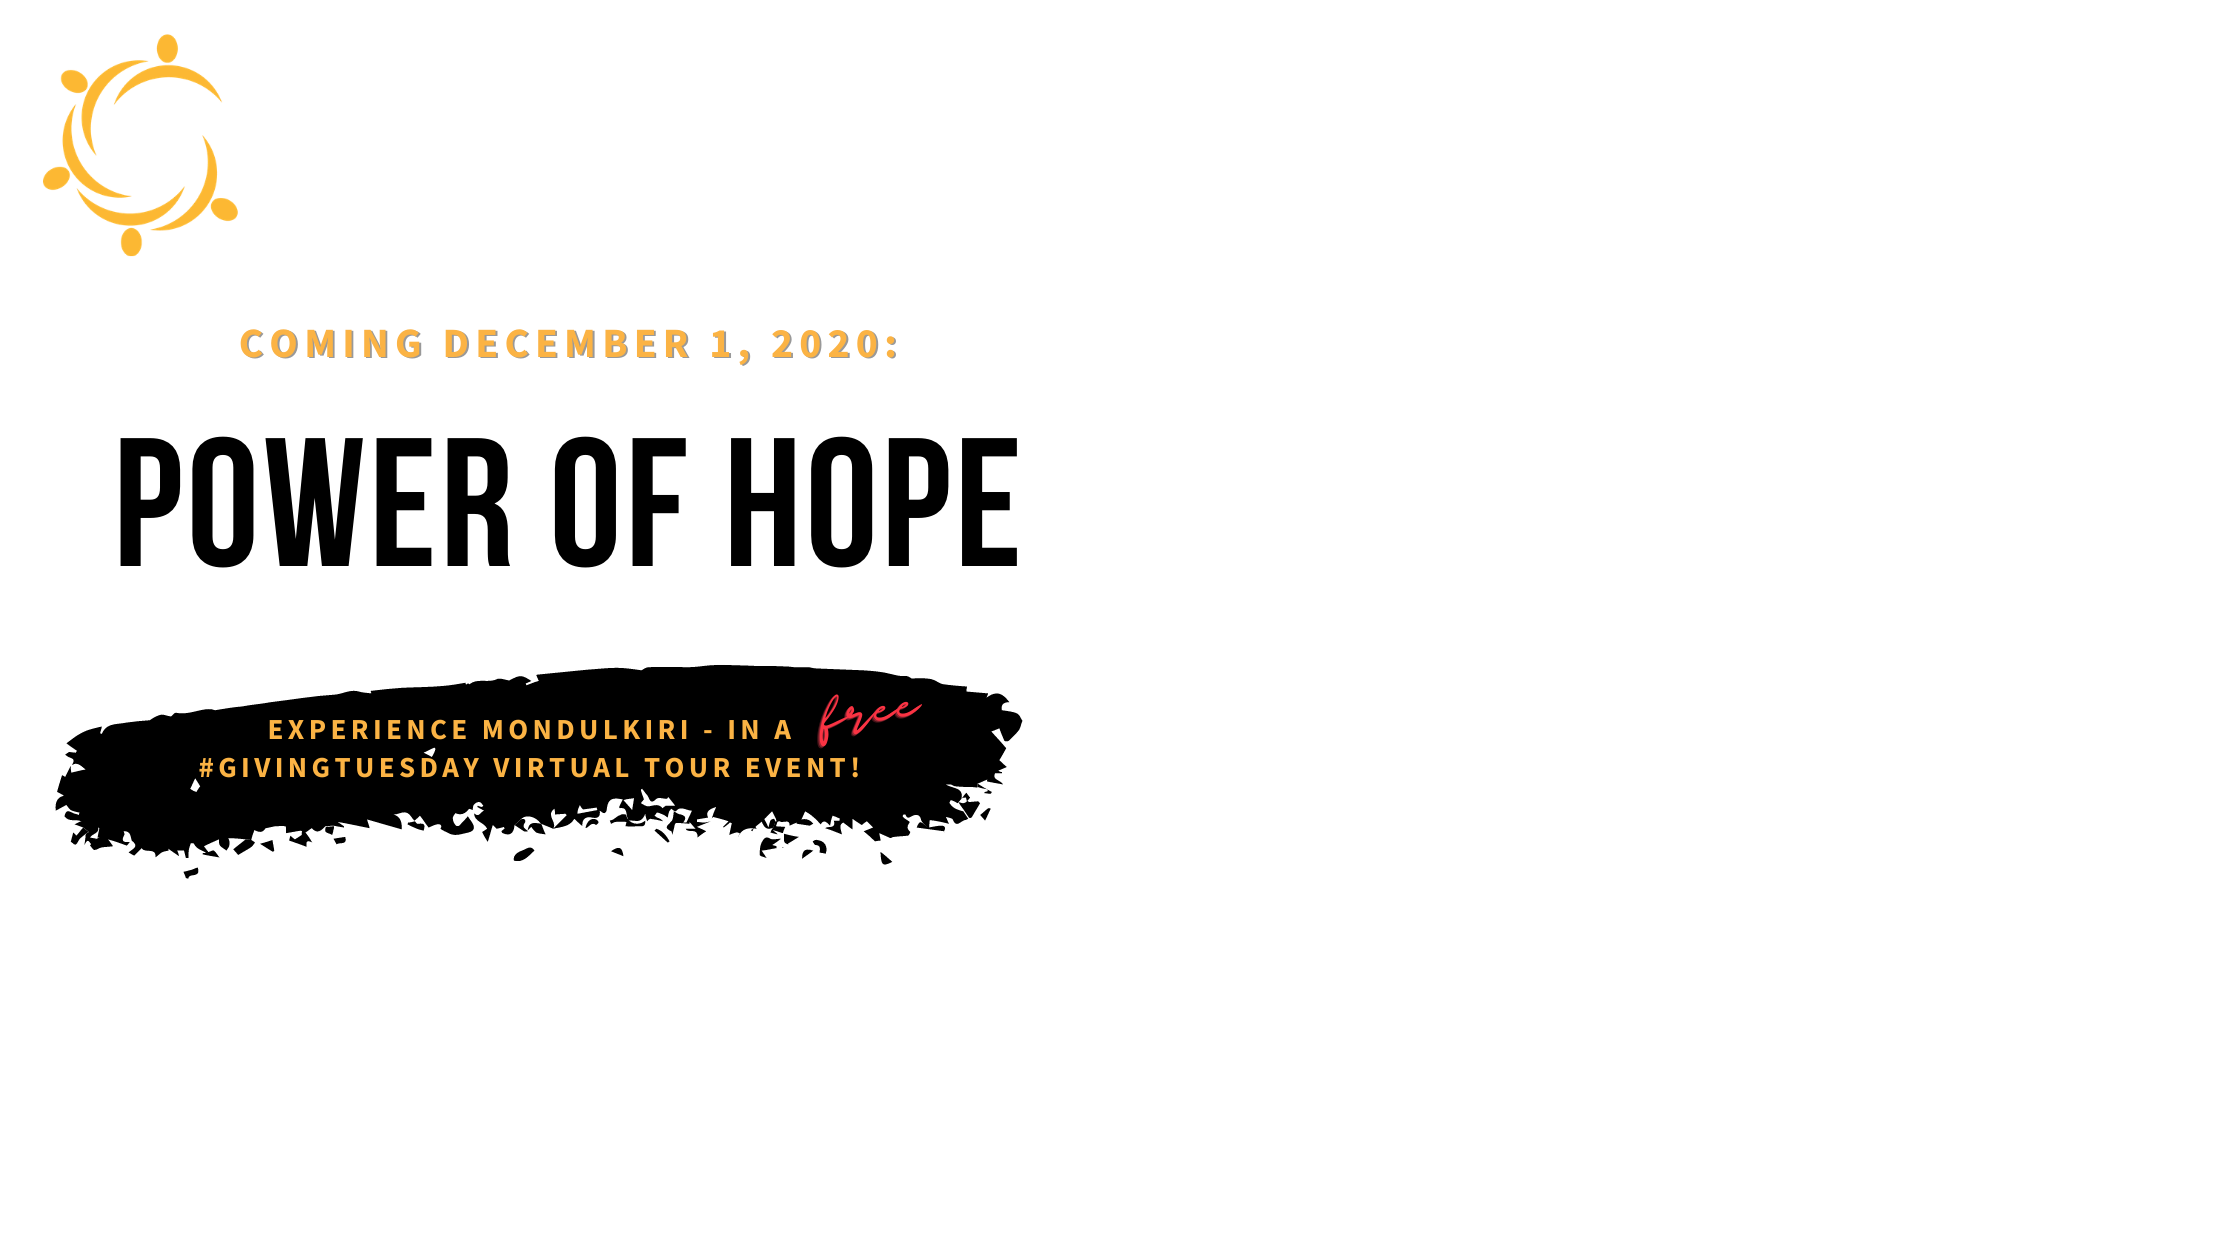 The Power of Hope on Dec 1